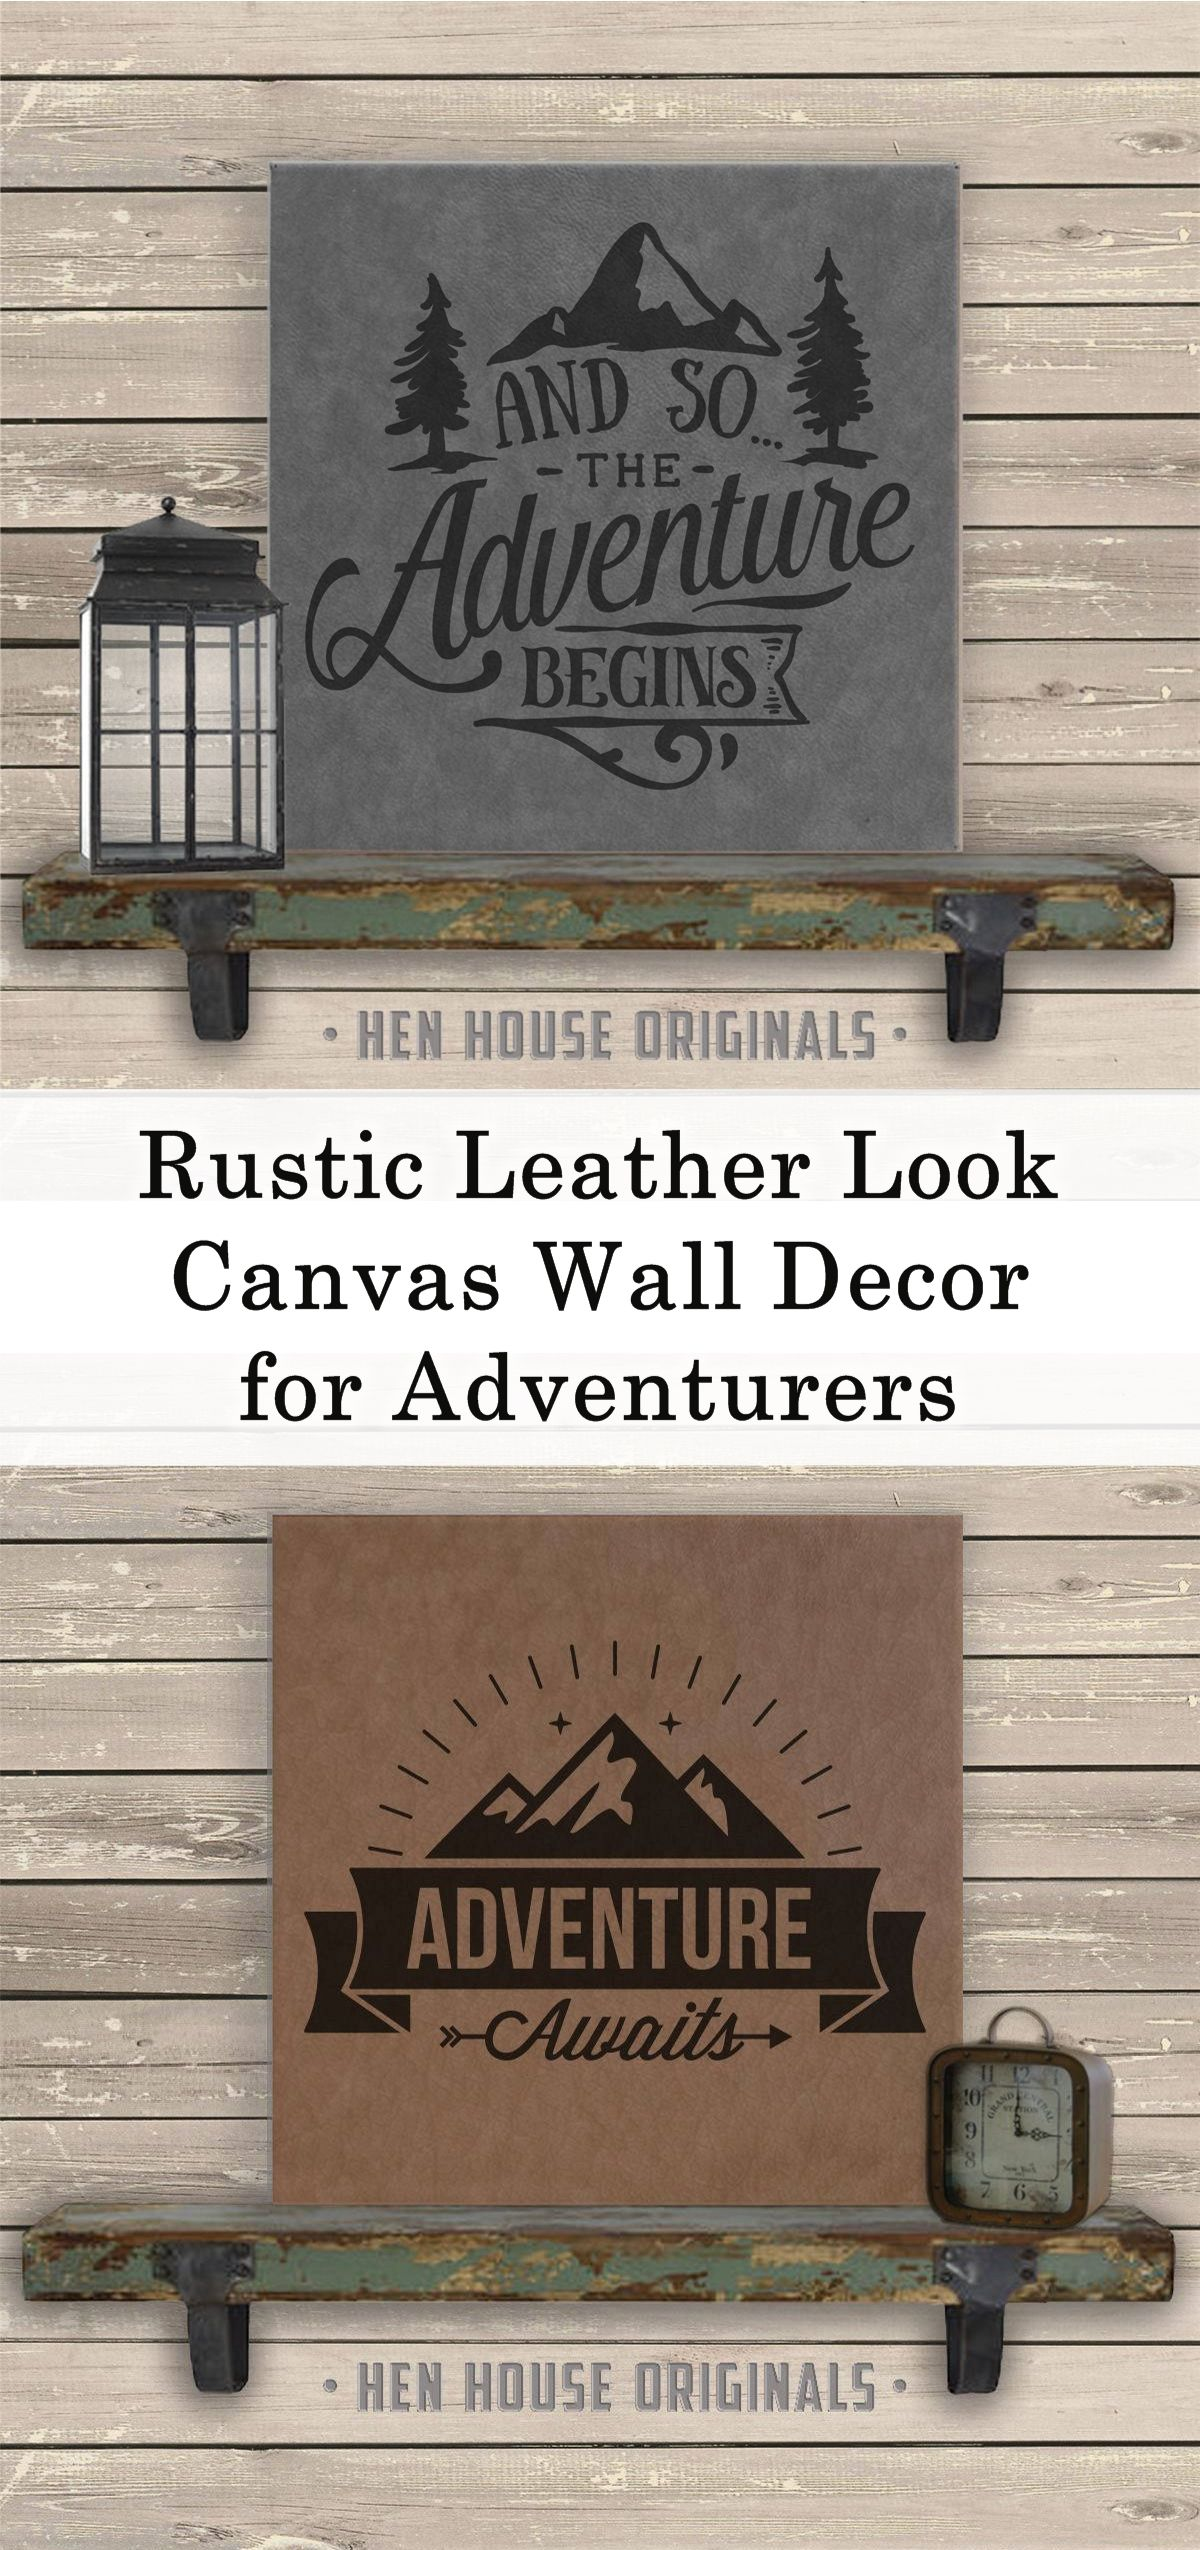 This high quality laser engraved leatherette wall art has a